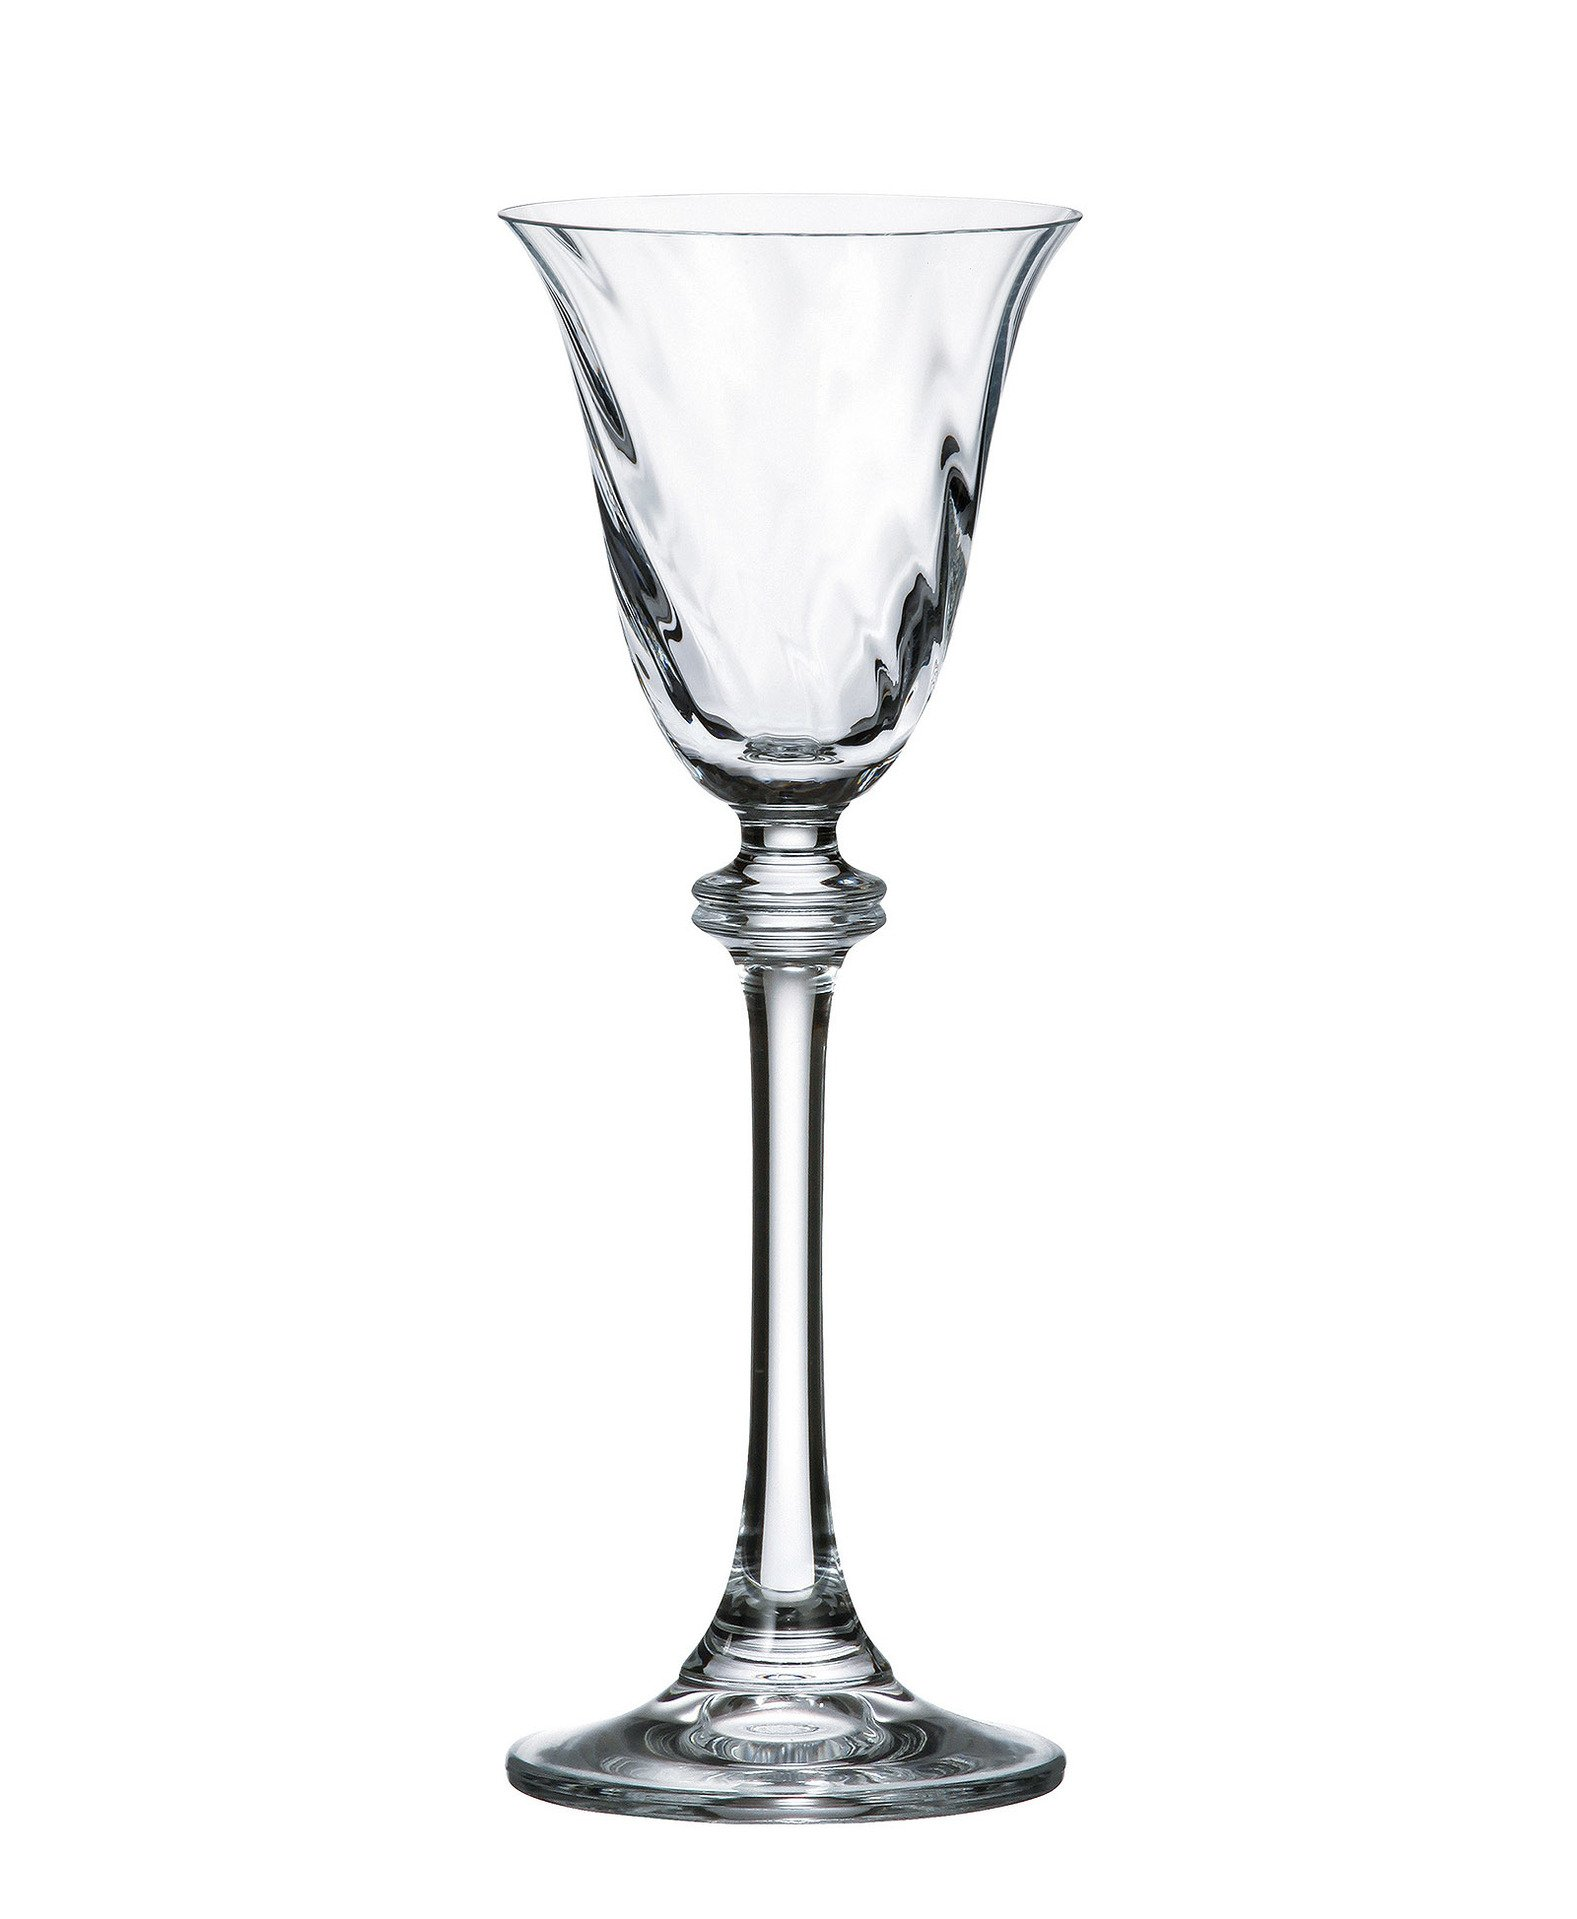 Bohemia Crystal Cordial Glasses, ''Alexandra'' Collection, Non-Leaded Optic Crystal, Set of 6, holds 2.2 ounces, Clear